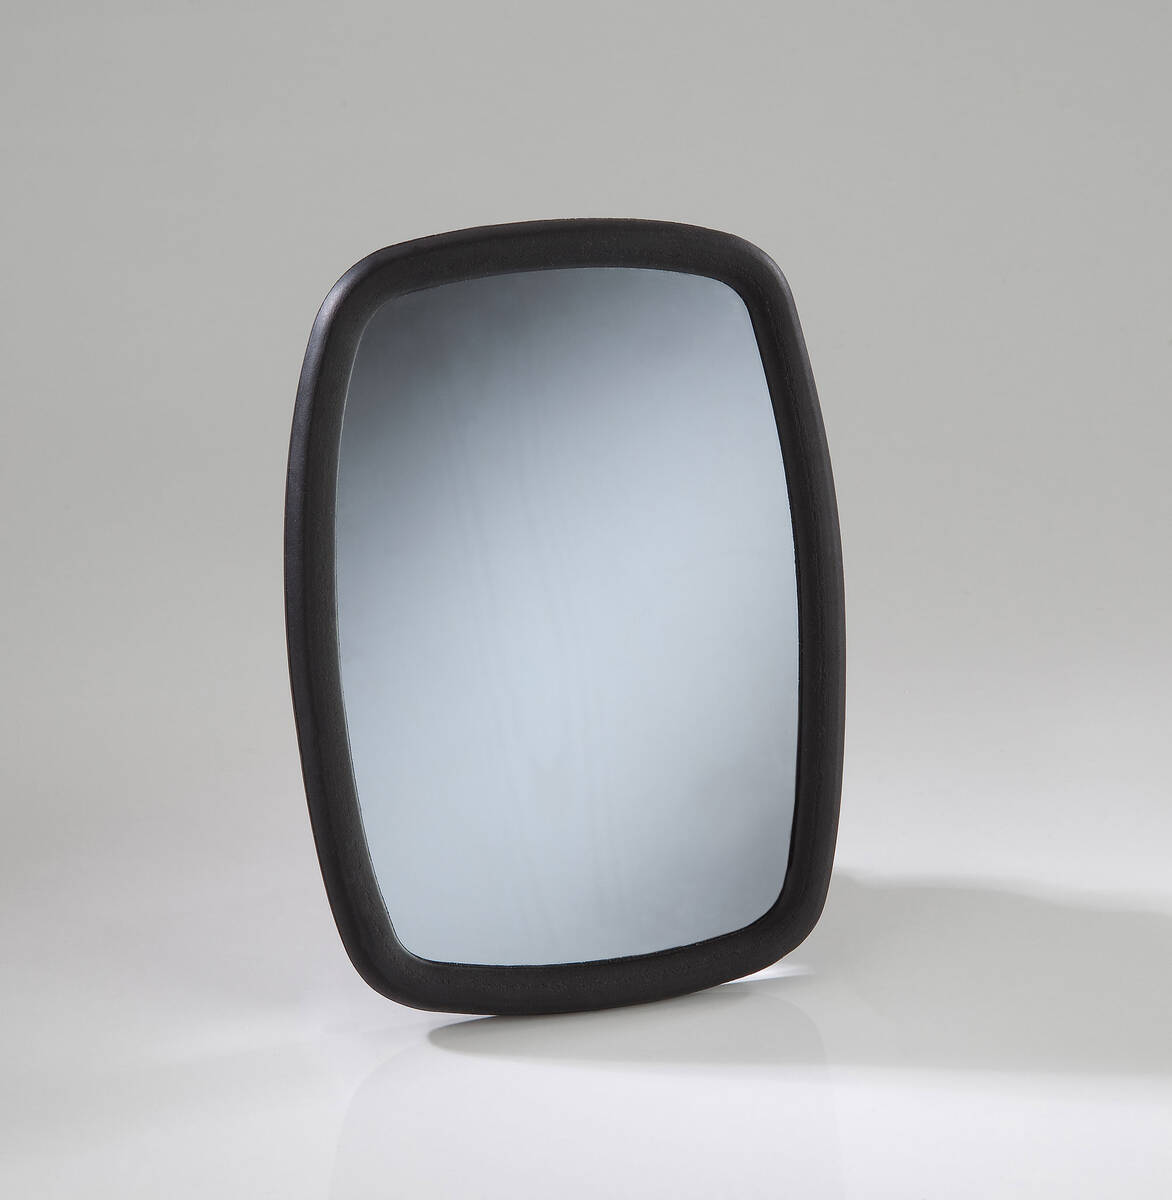 Attachable mirror different sizes uk for Different sized mirrors